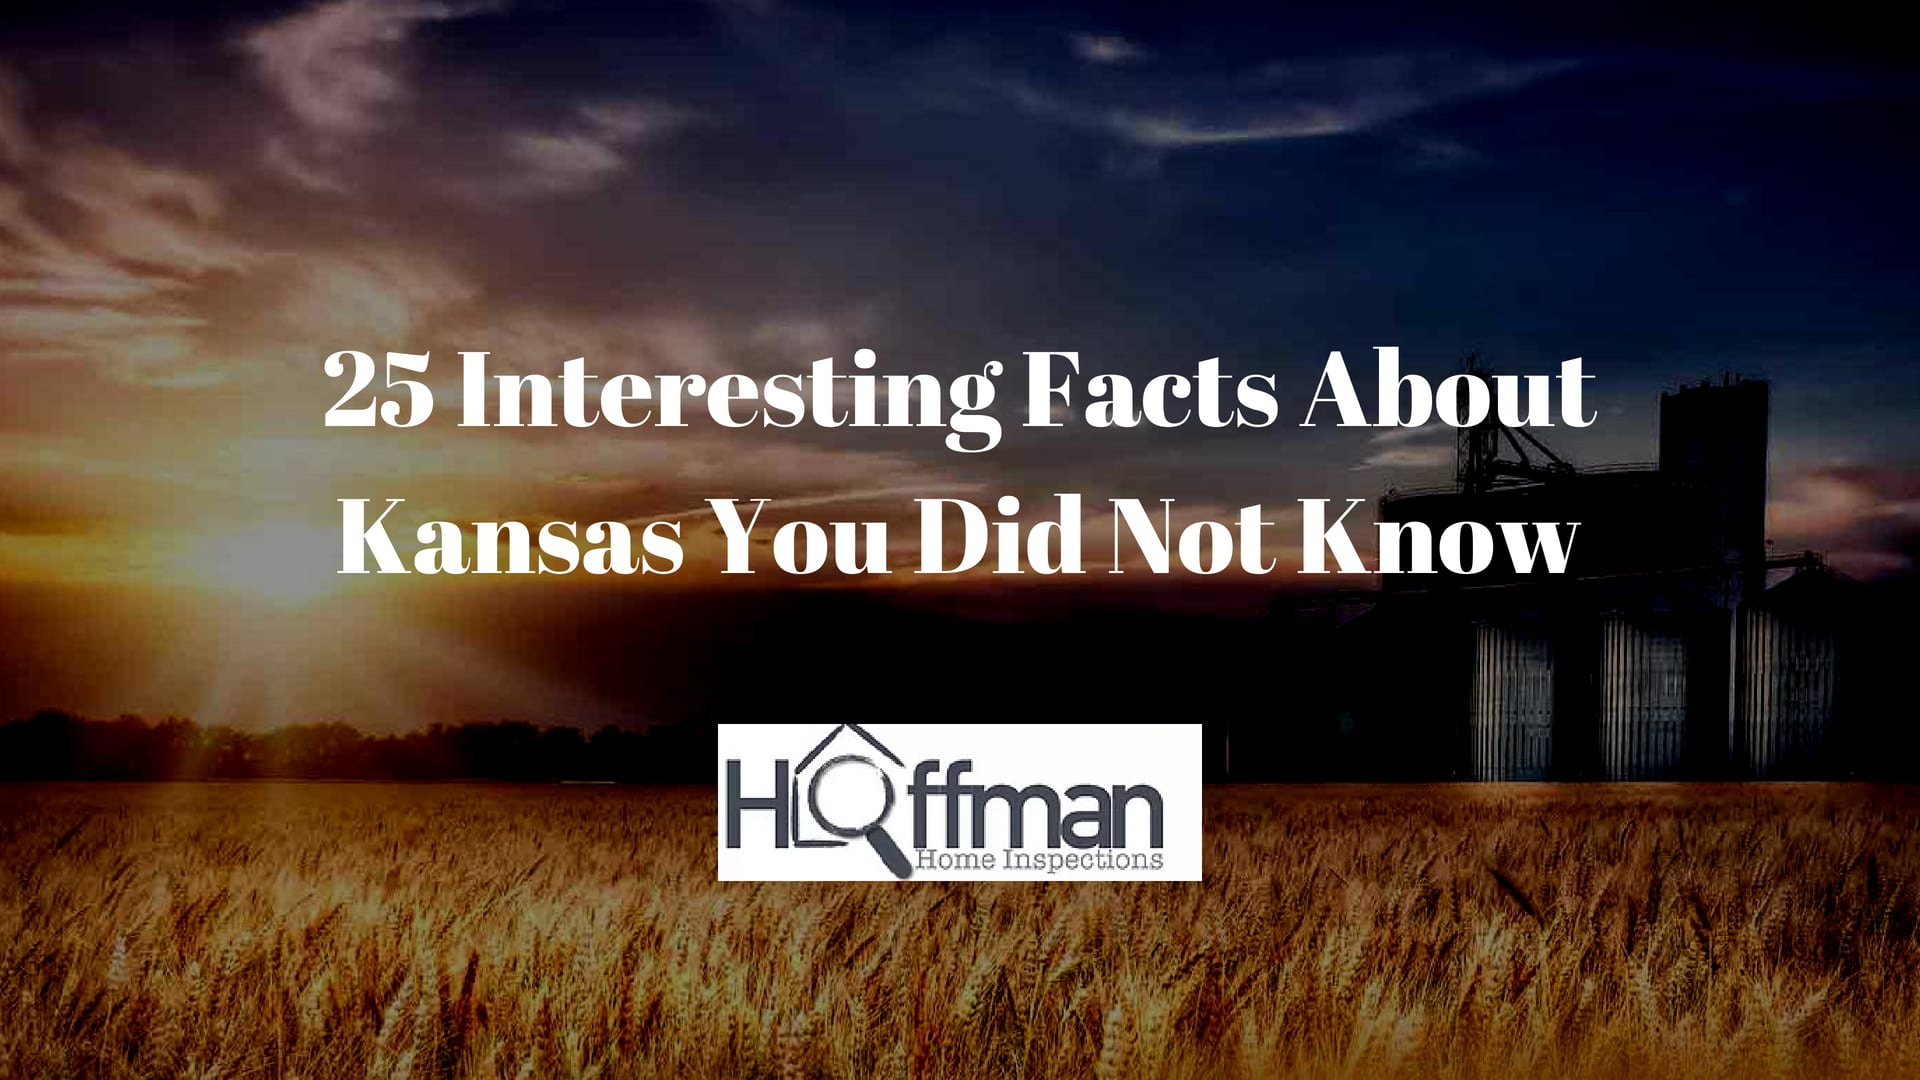 25 Interesting Facts About Kansas You Did Not Know - Hoffman Home